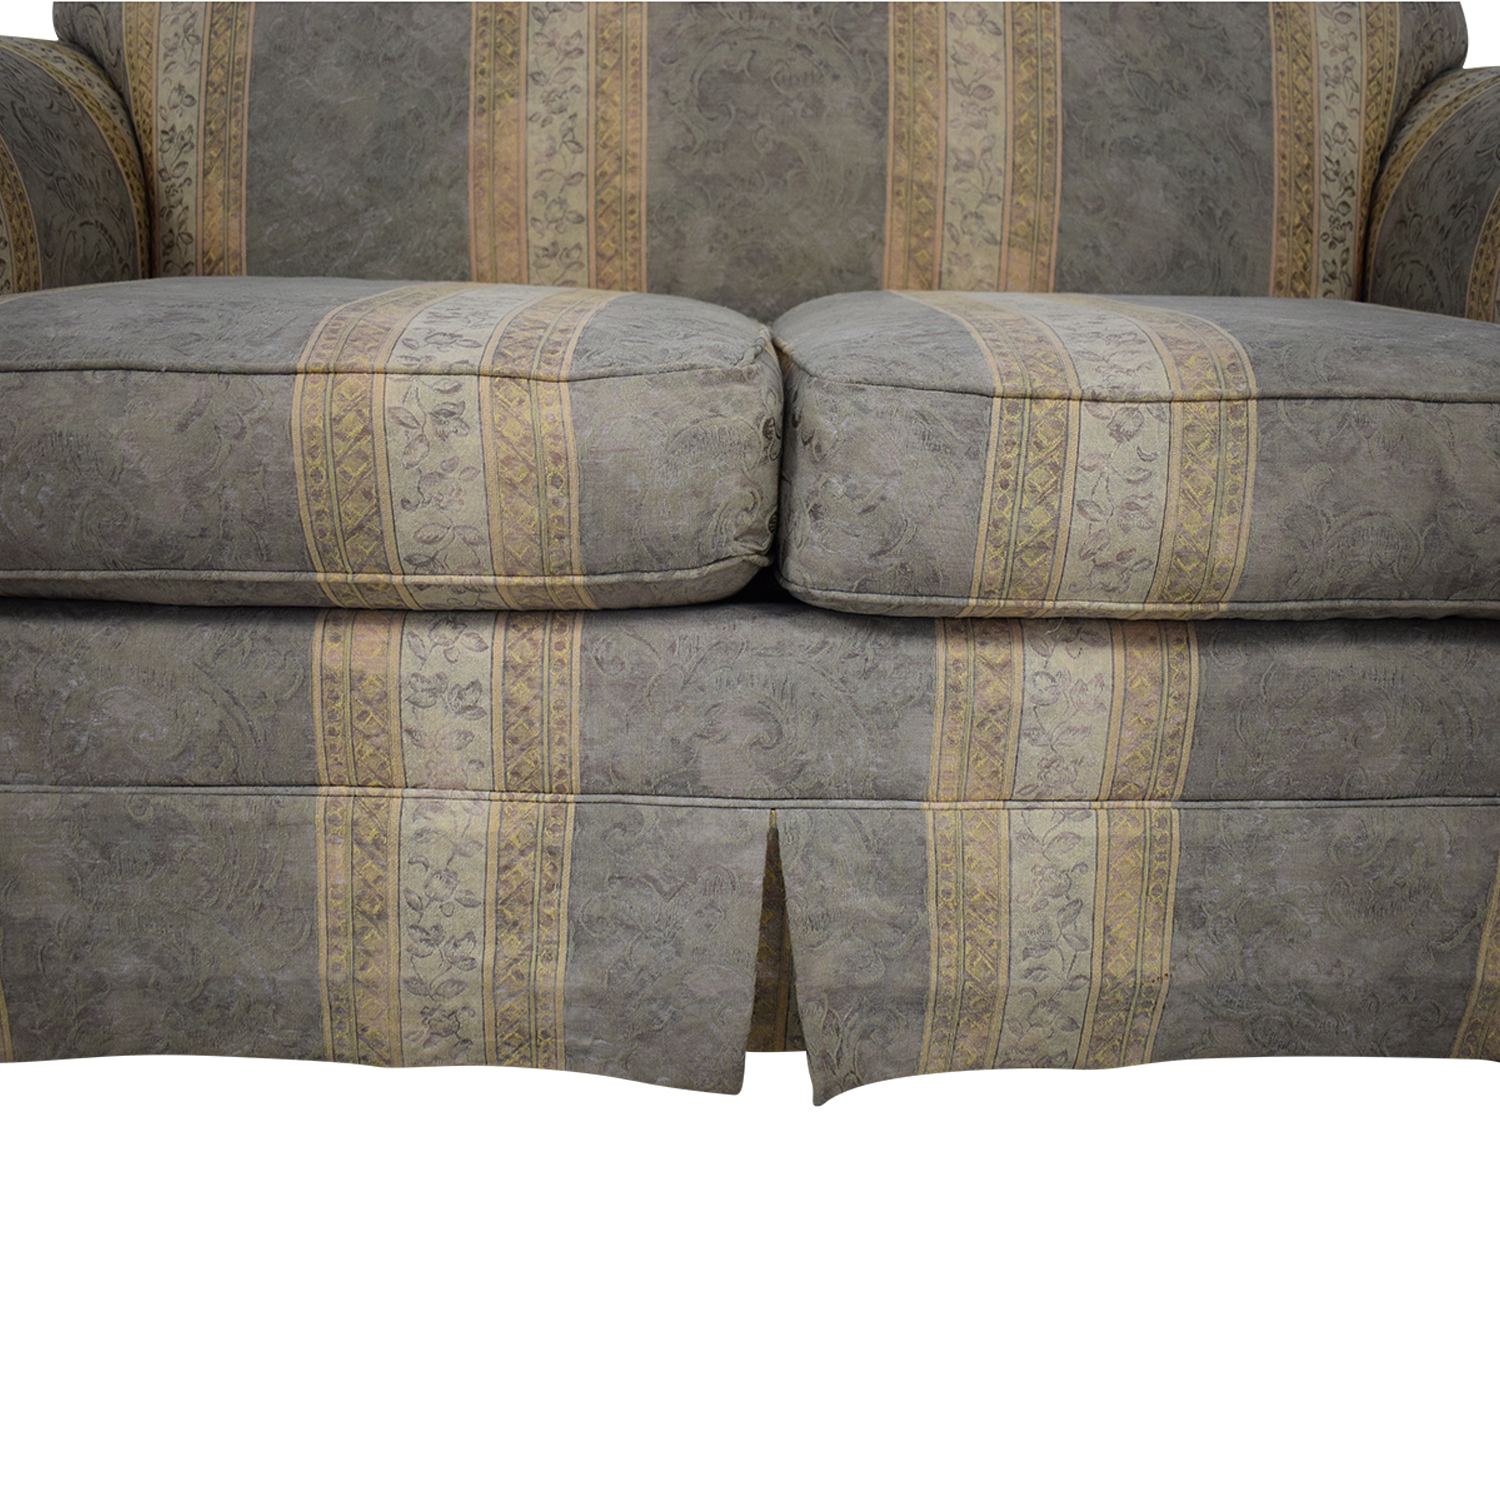 Thomasville Thomasville Impressions Regency Style Loveseat dimensions